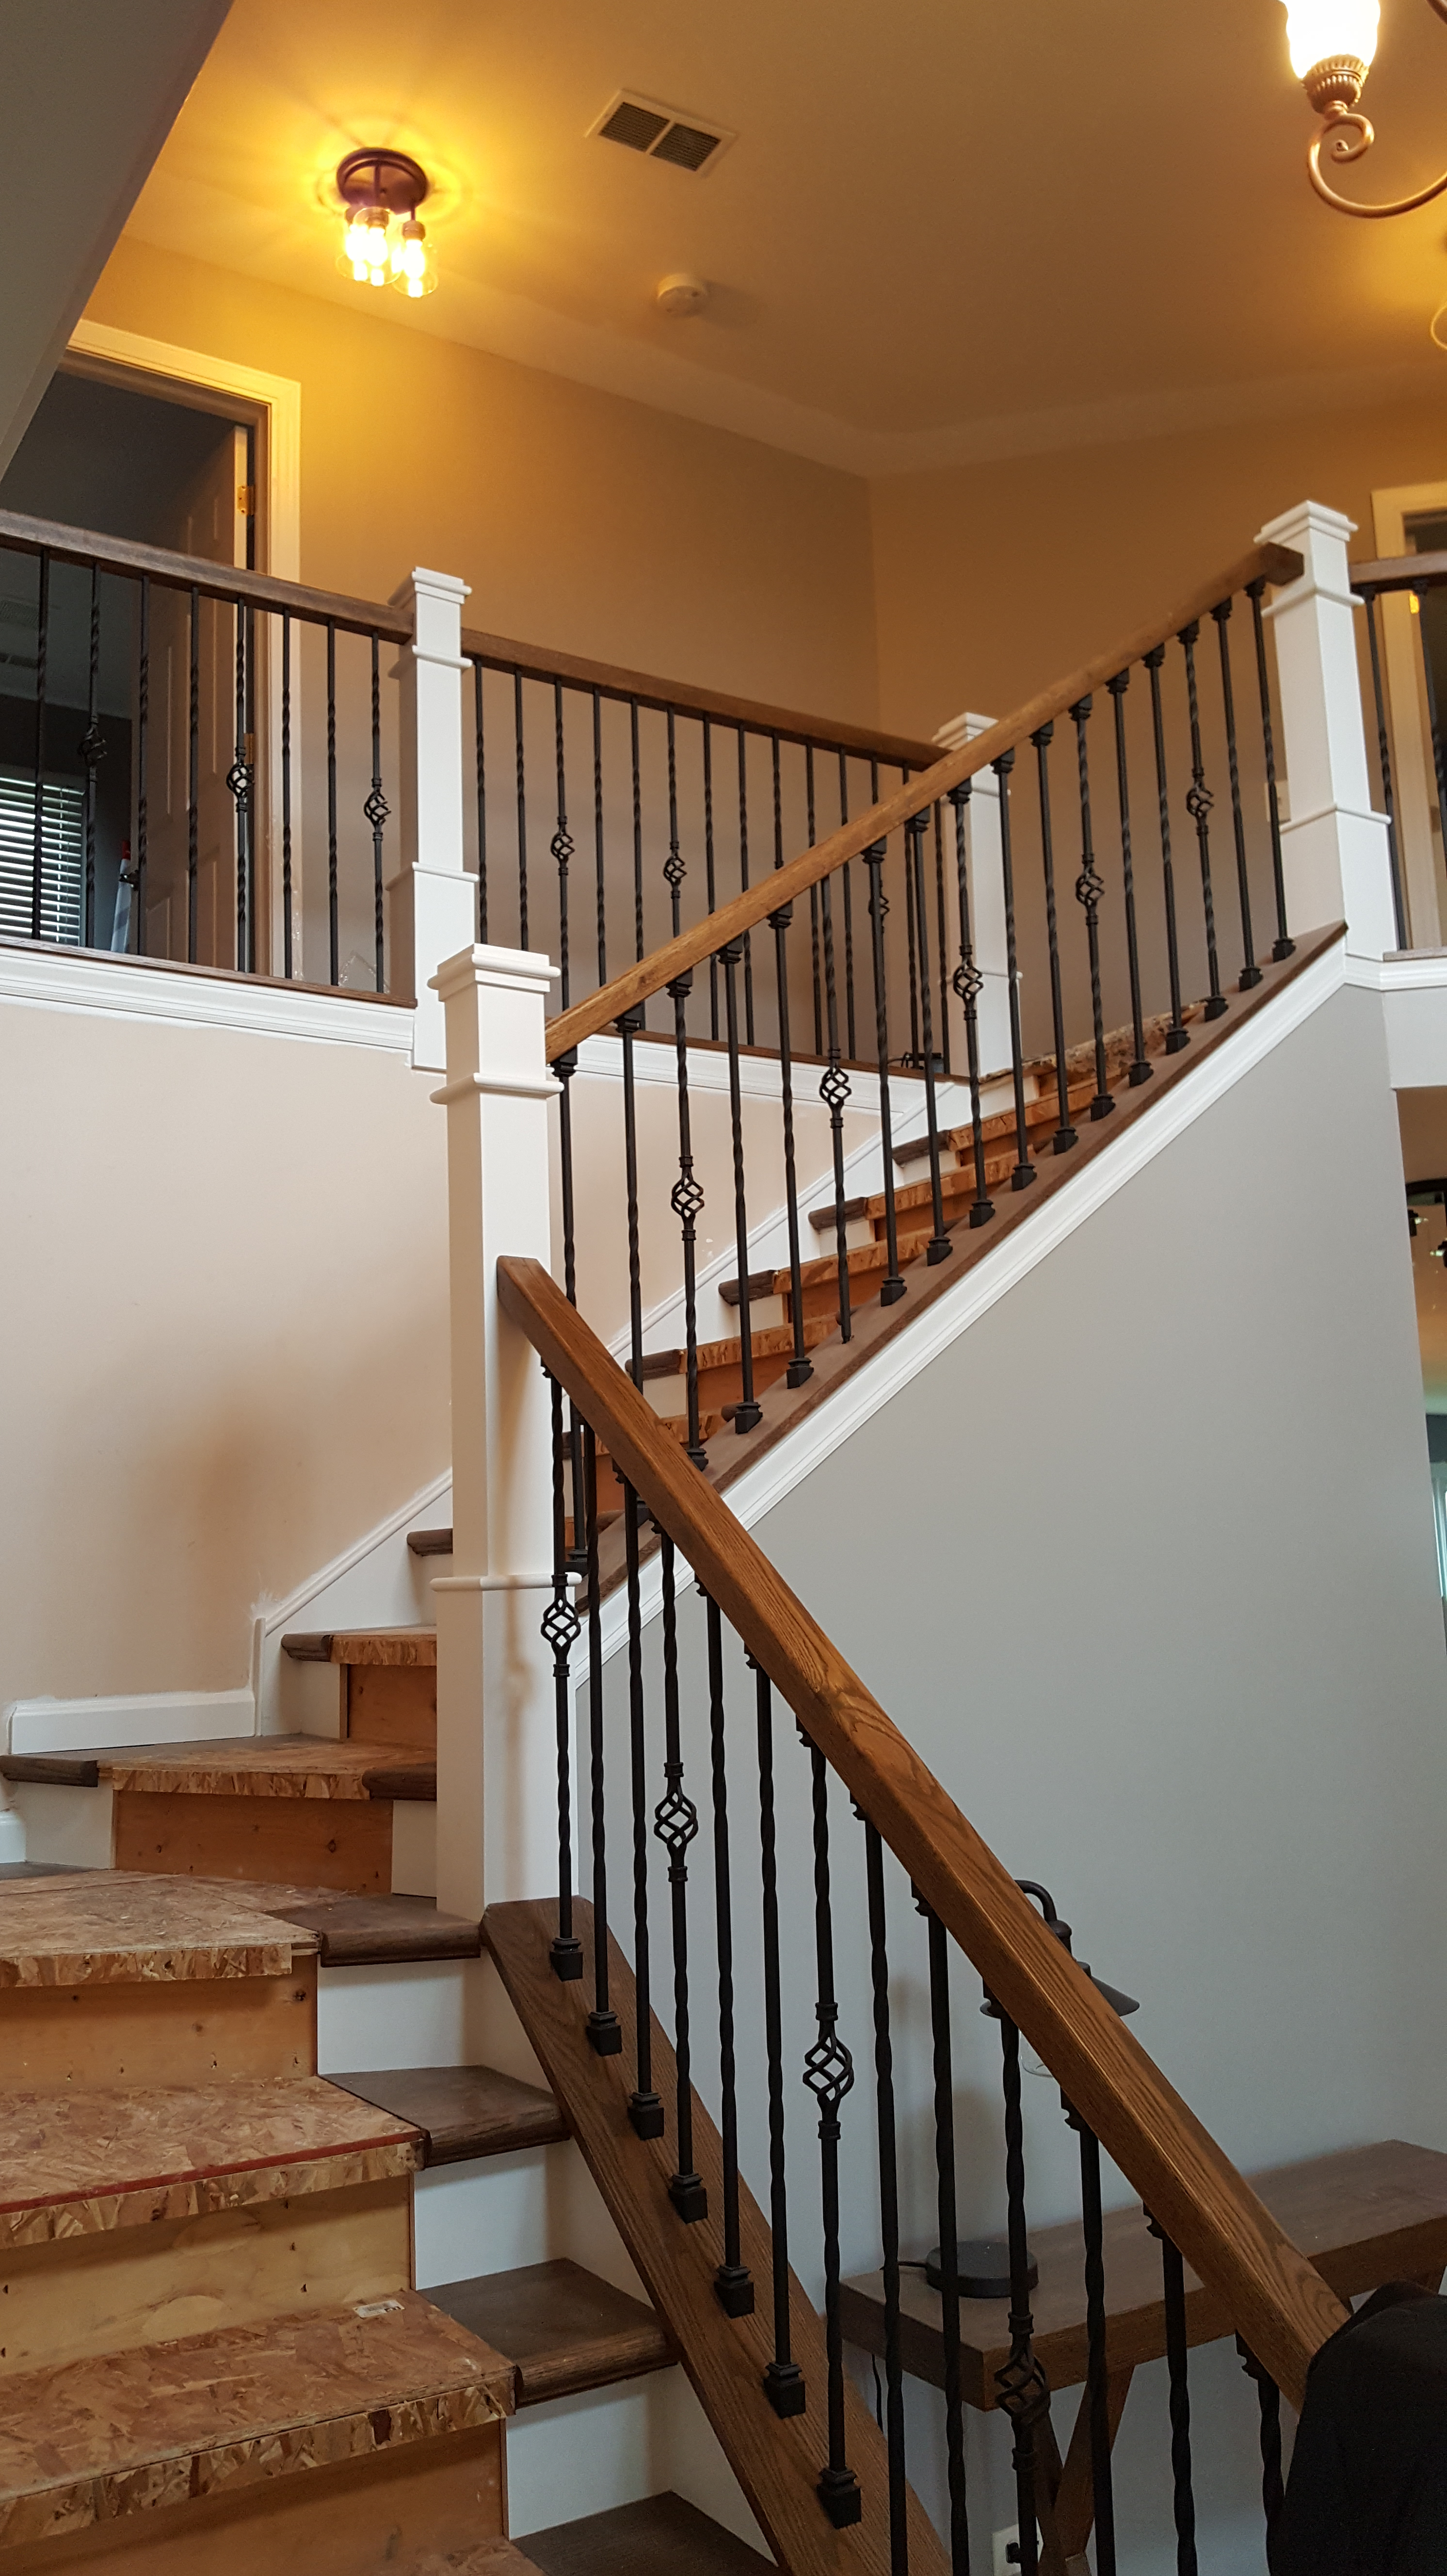 Lets Refurbish Your Outdated Staircase